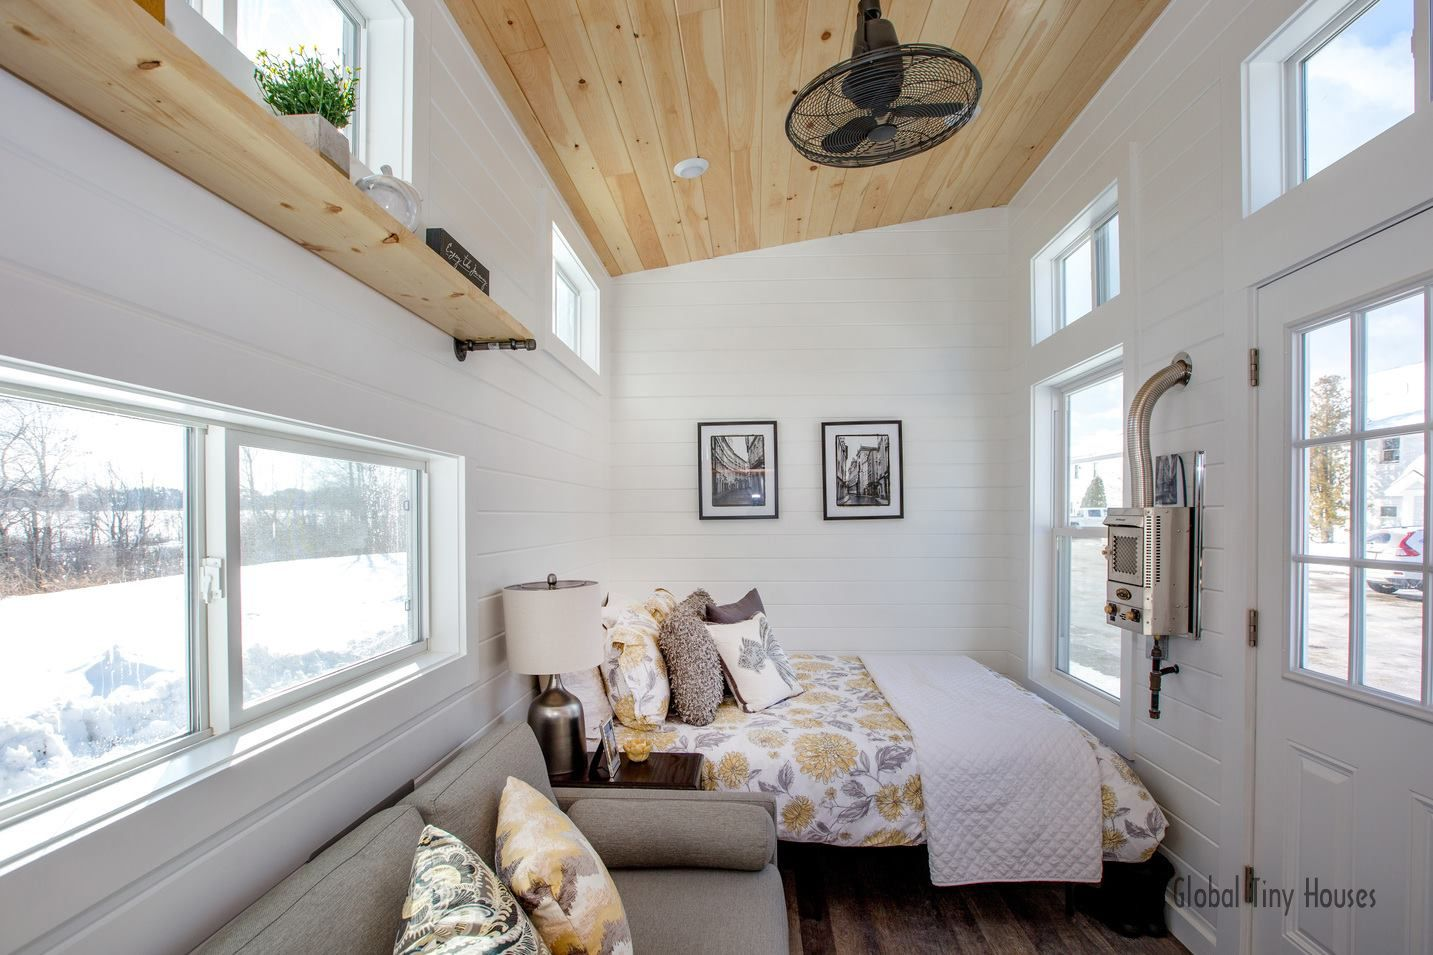 A Luxury Modern Rustic Tiny House For Sale From Global Tiny Houses